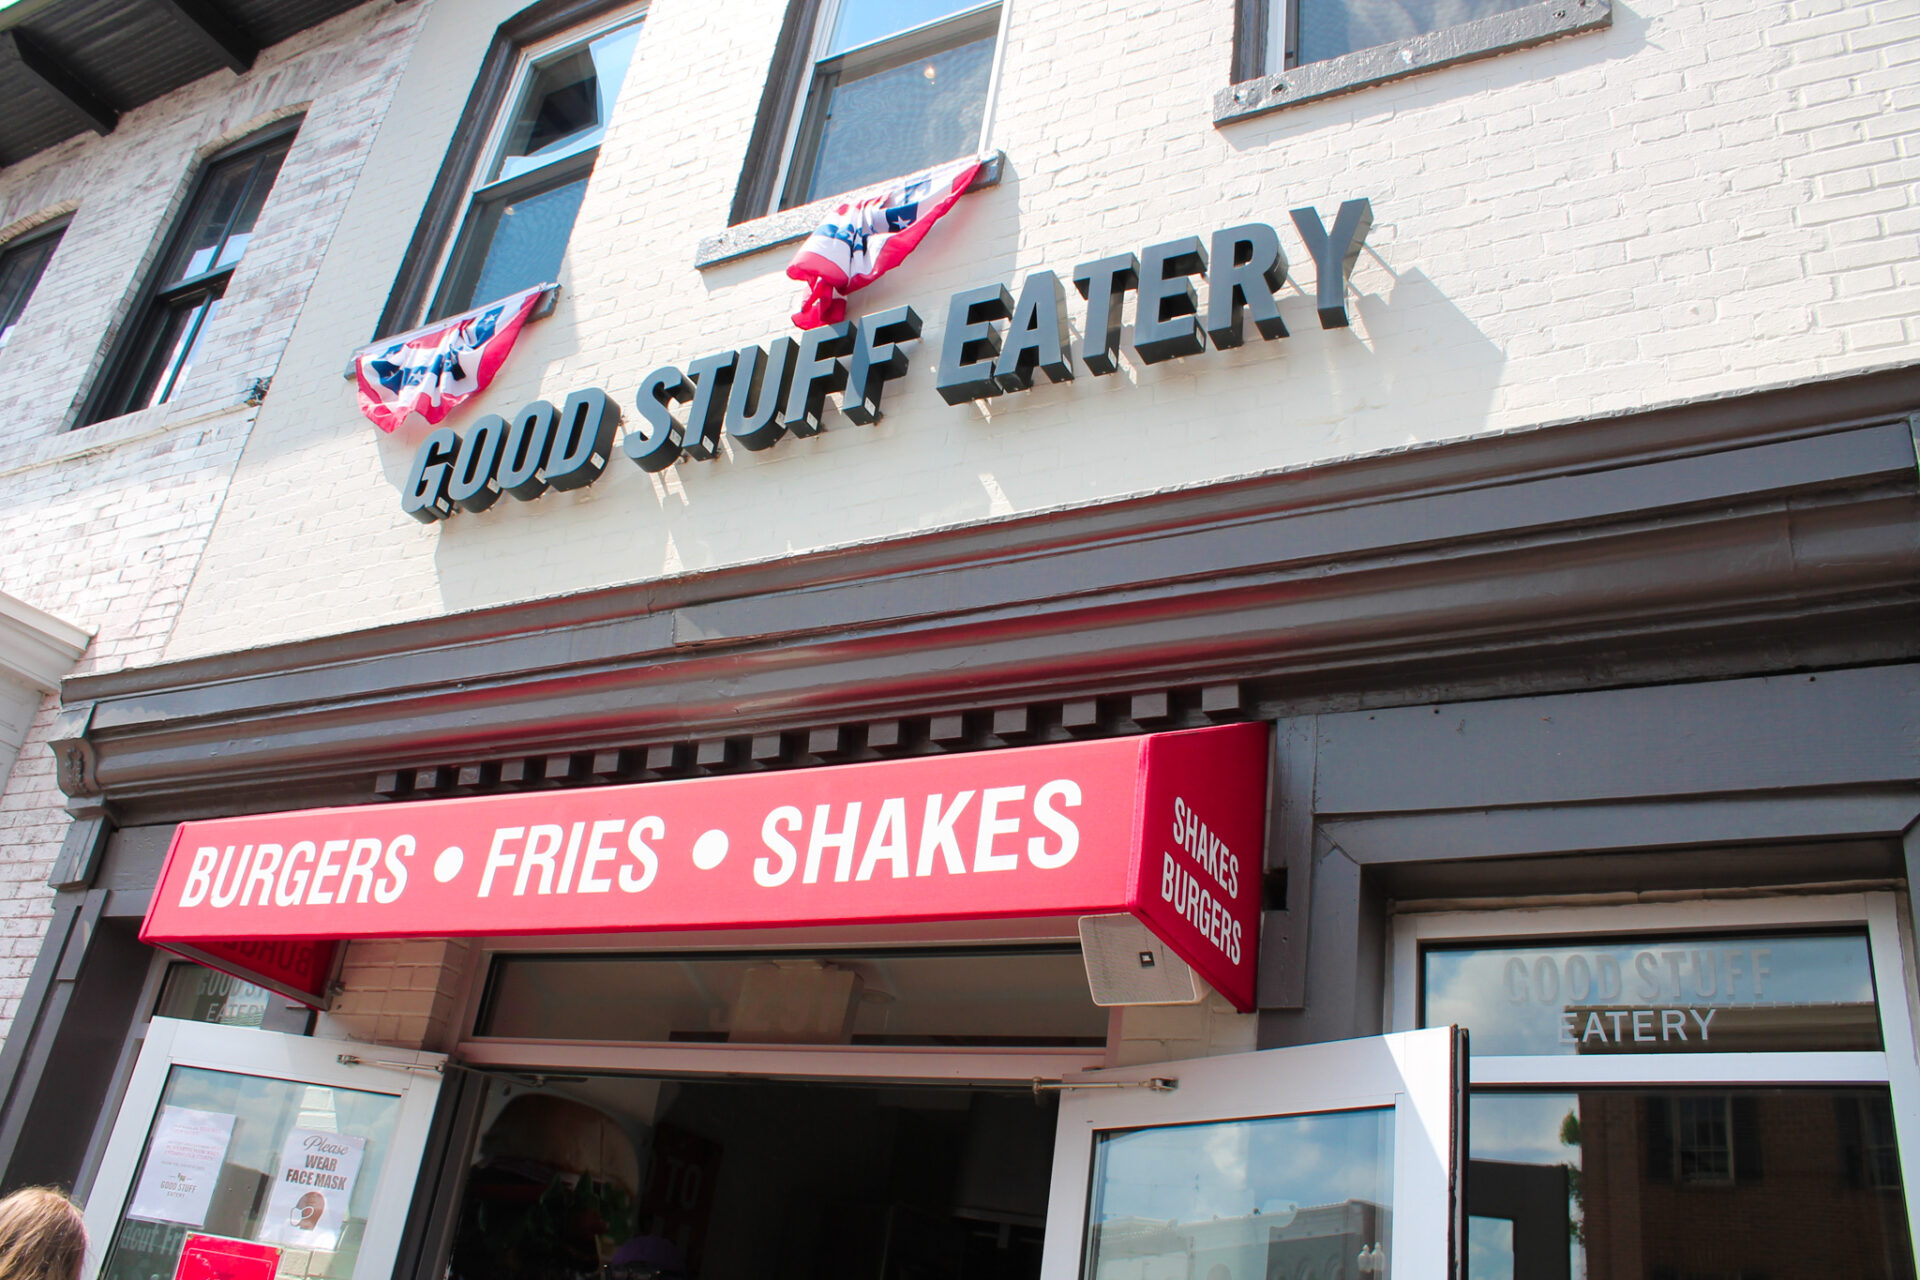 An exterior shot of Good Stuff Eatery in Georgetown, DC. My husband ordered the Obama burger with rosemary fries. Yummy!